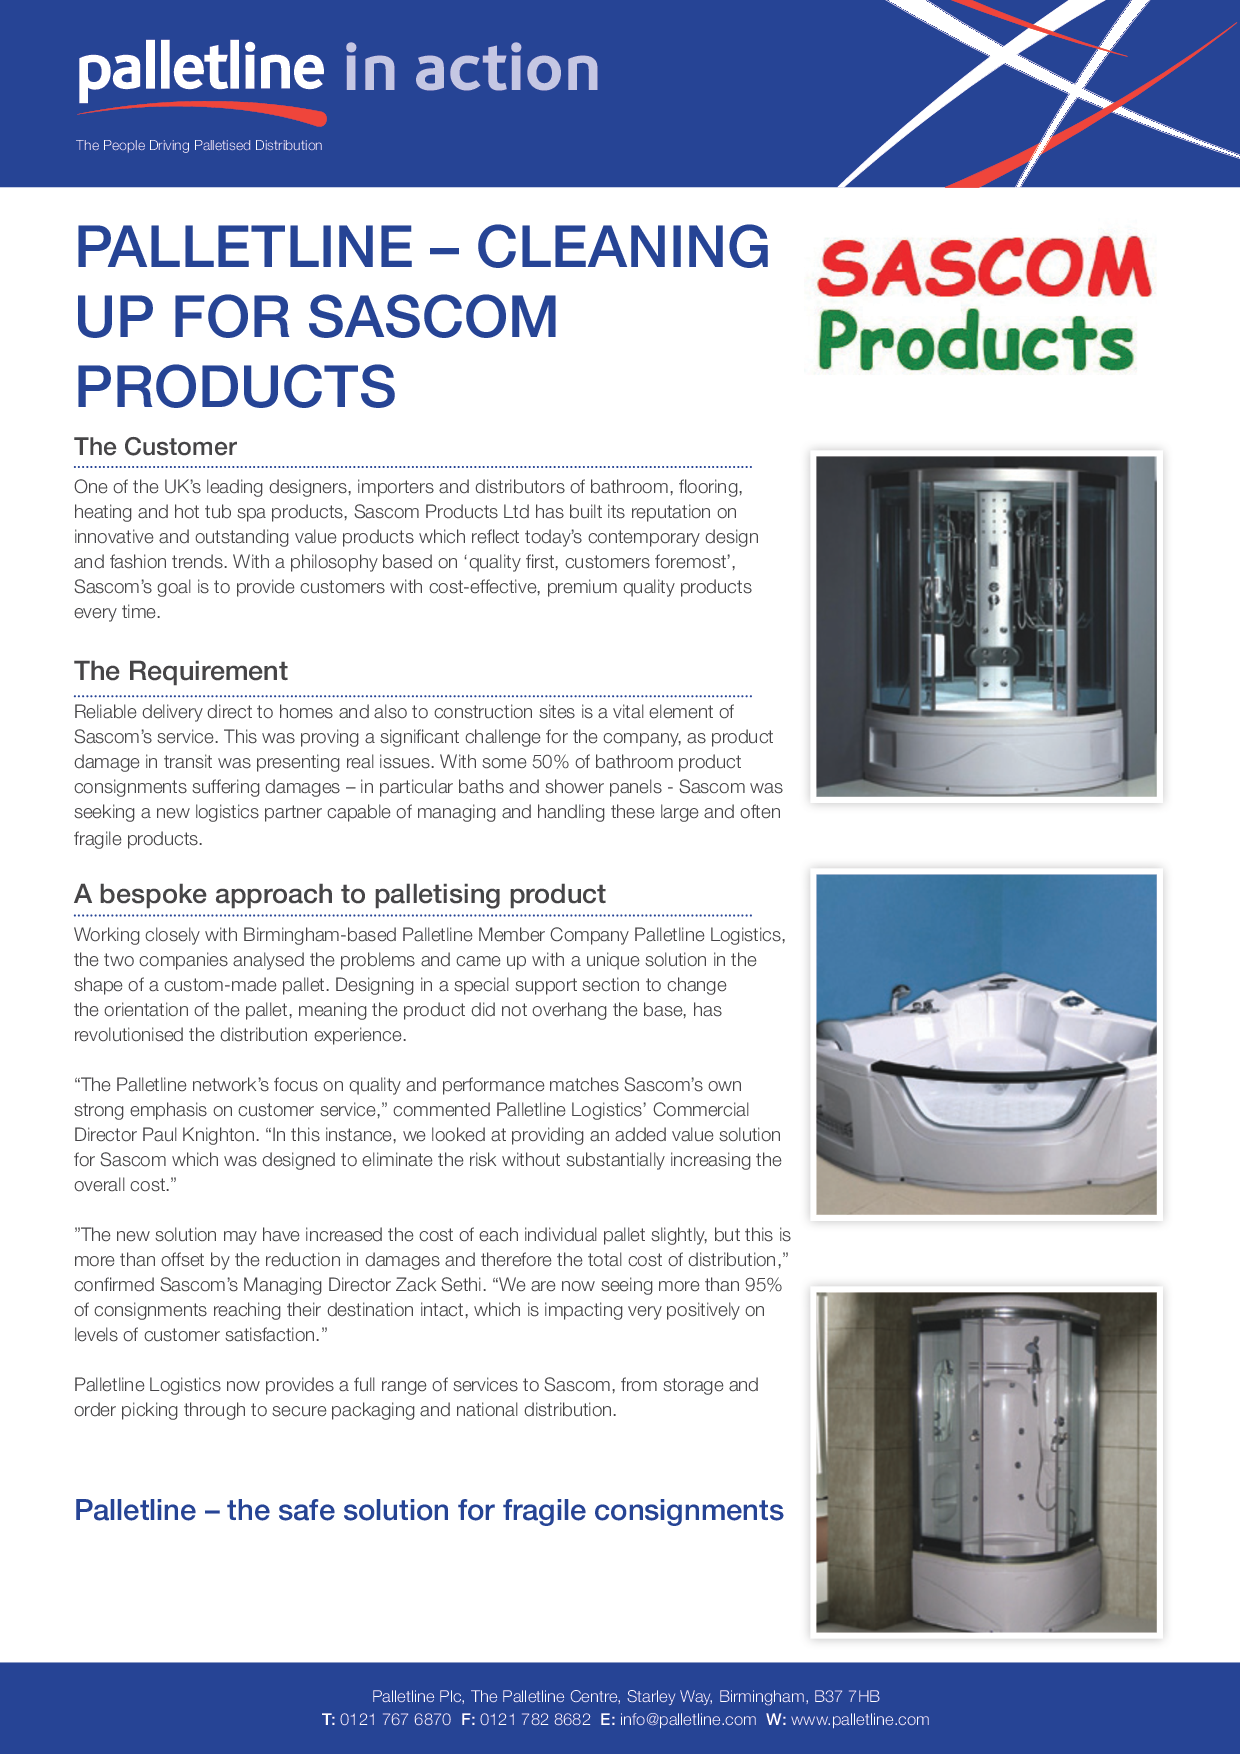 Palletline – Cleaning Up For Sascom Products